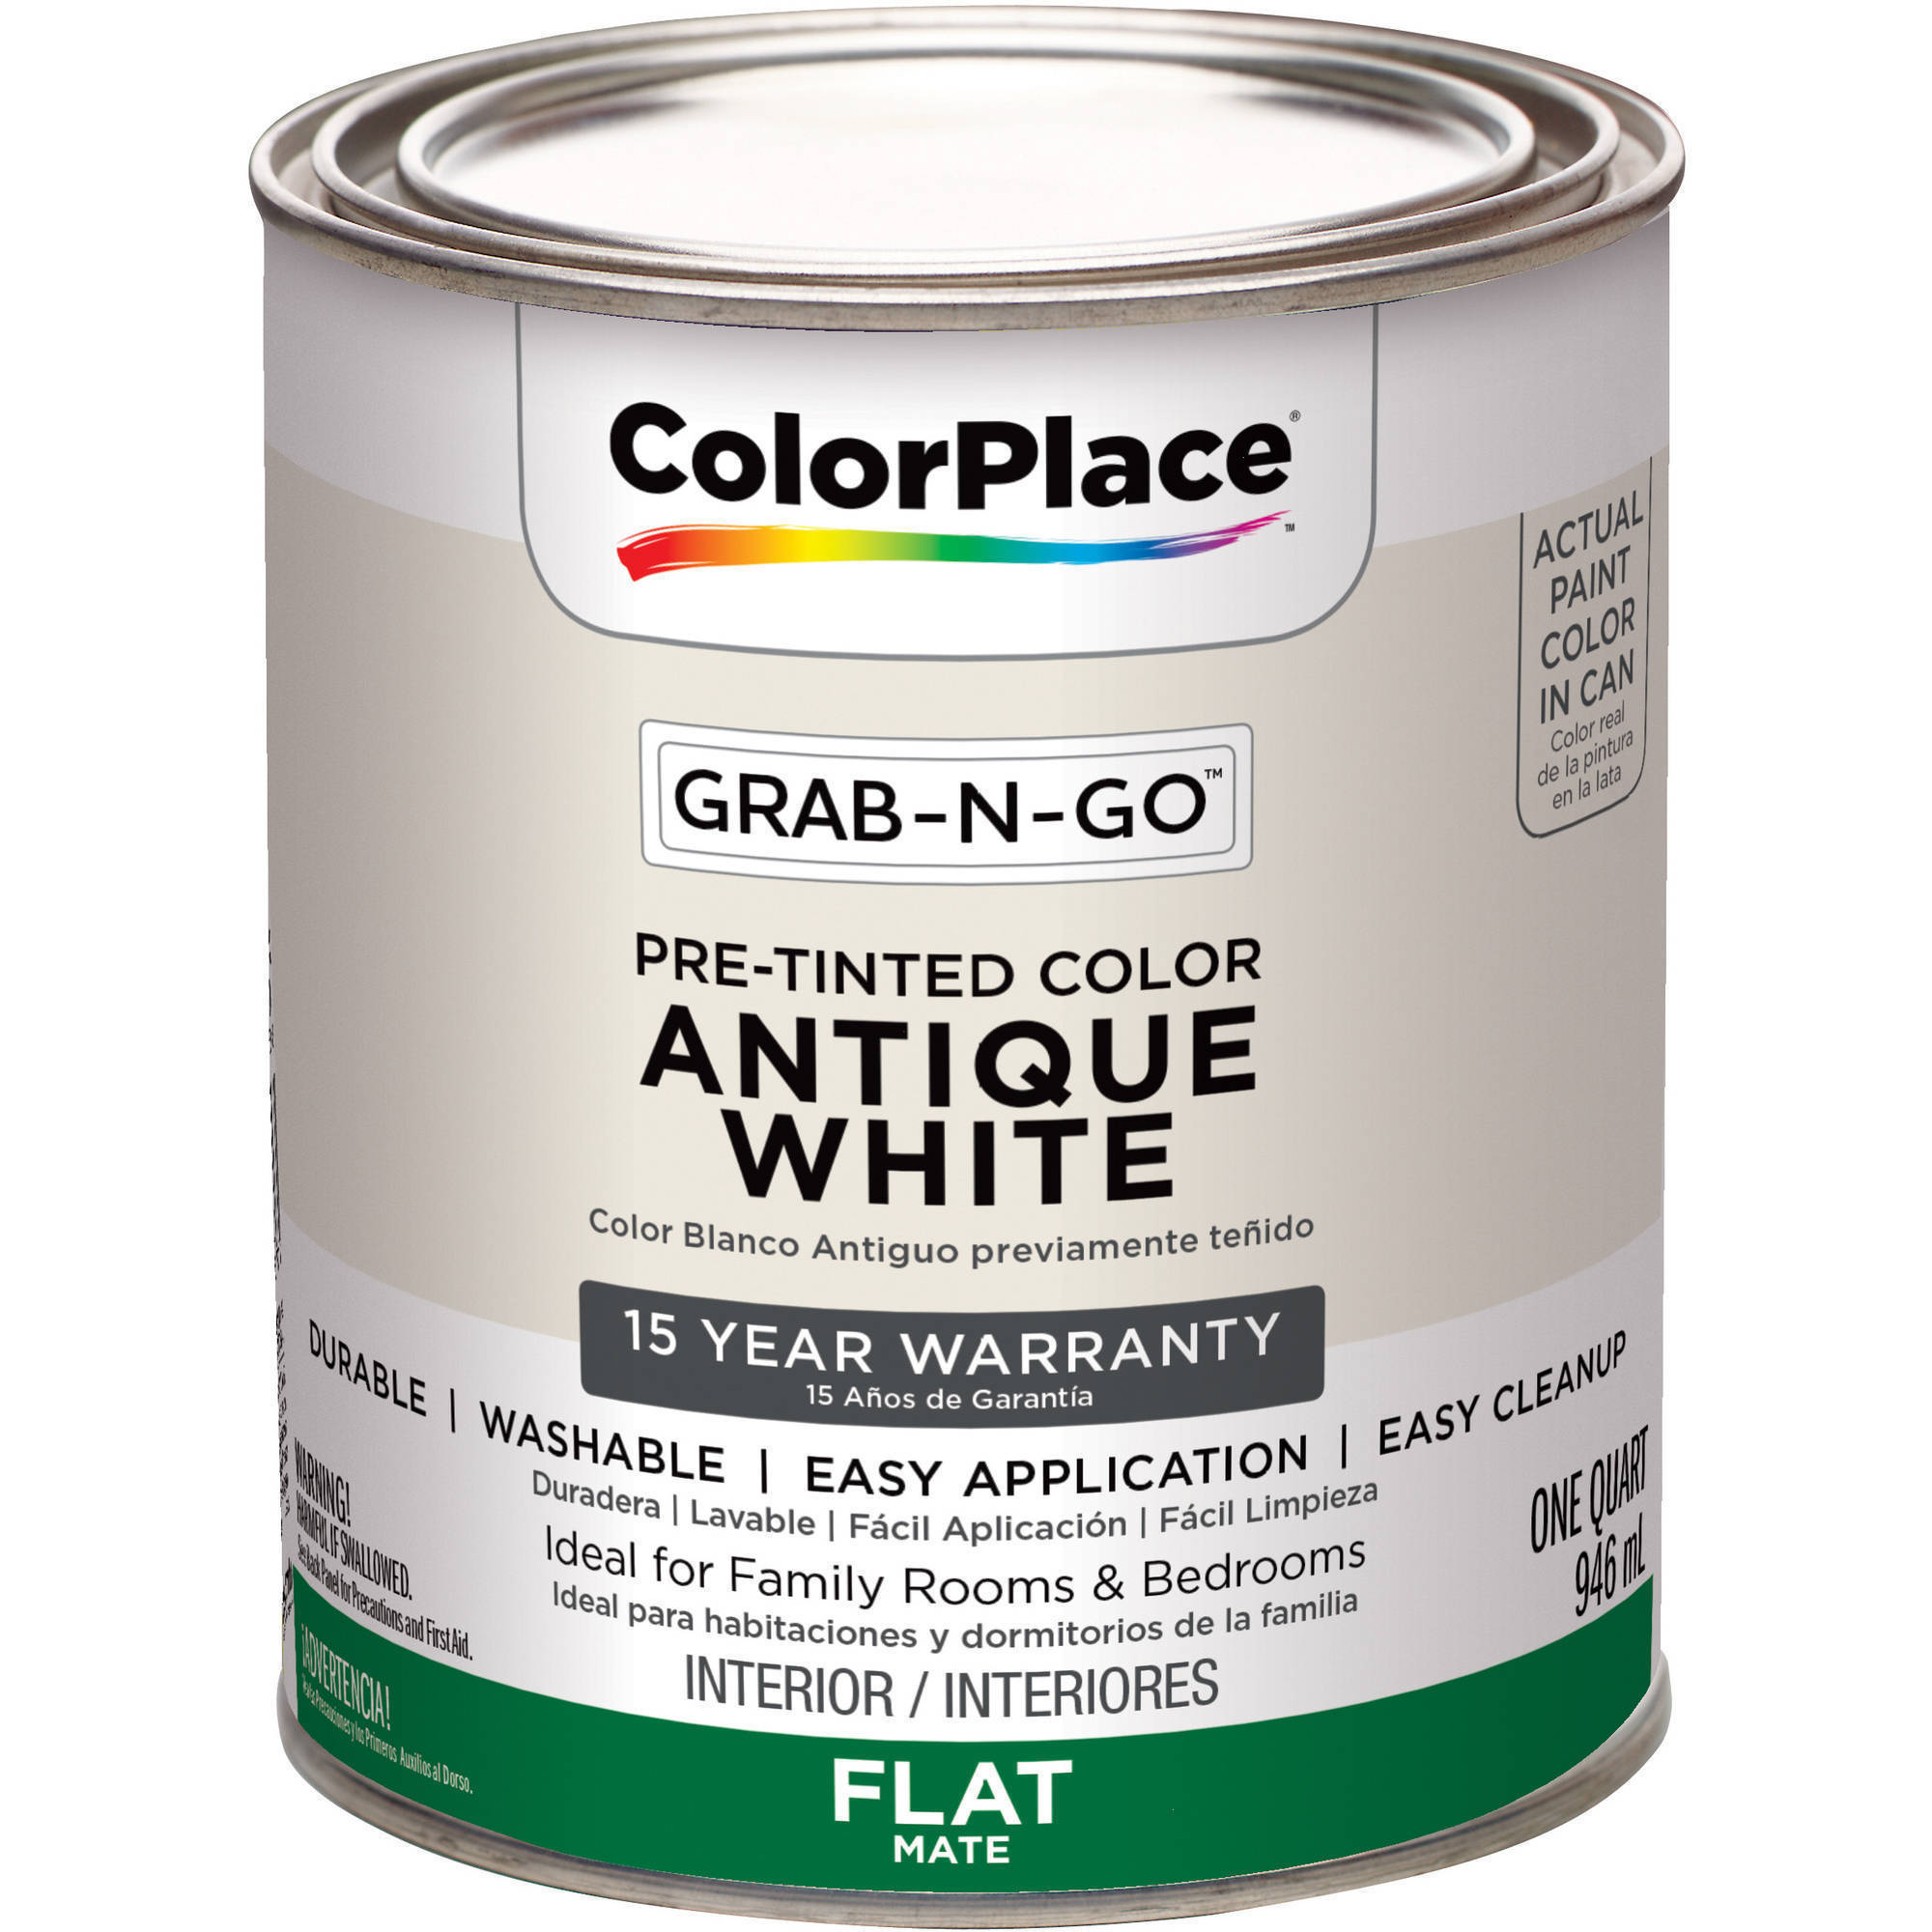 ColorPlace Grab-N-Go Antique White Interior Paint with Duck Brand ...